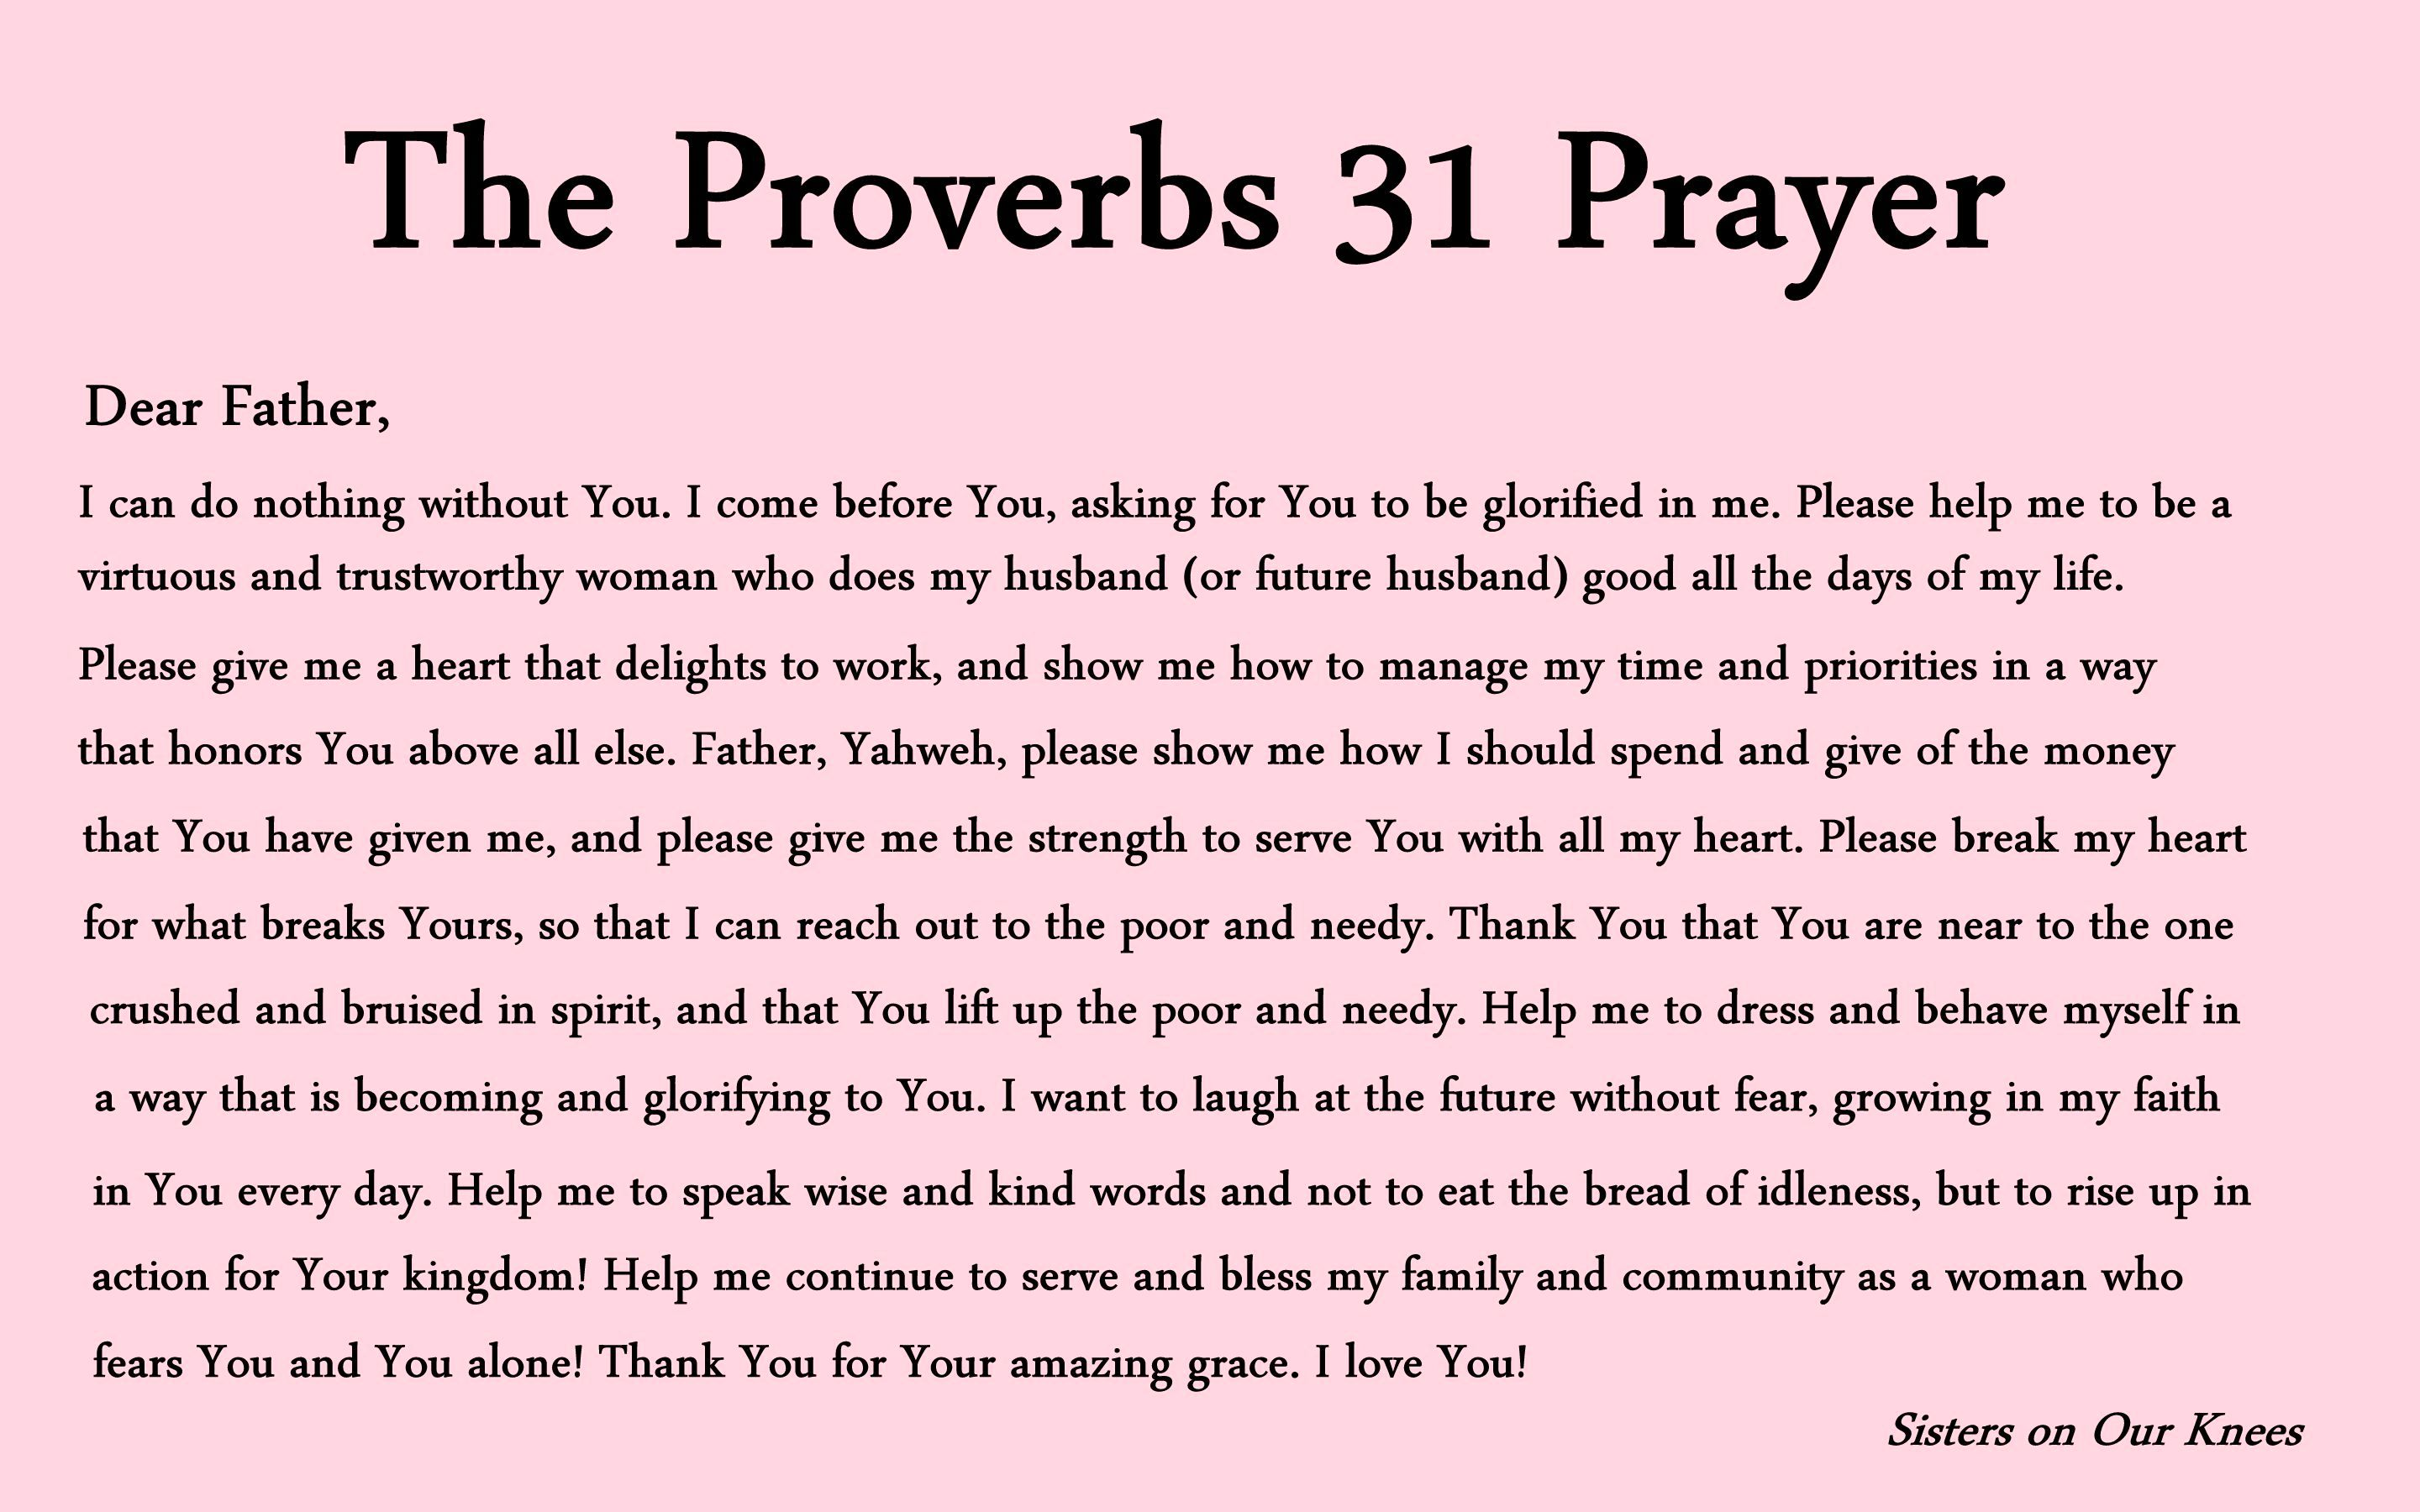 Proverbs 31 Prayer